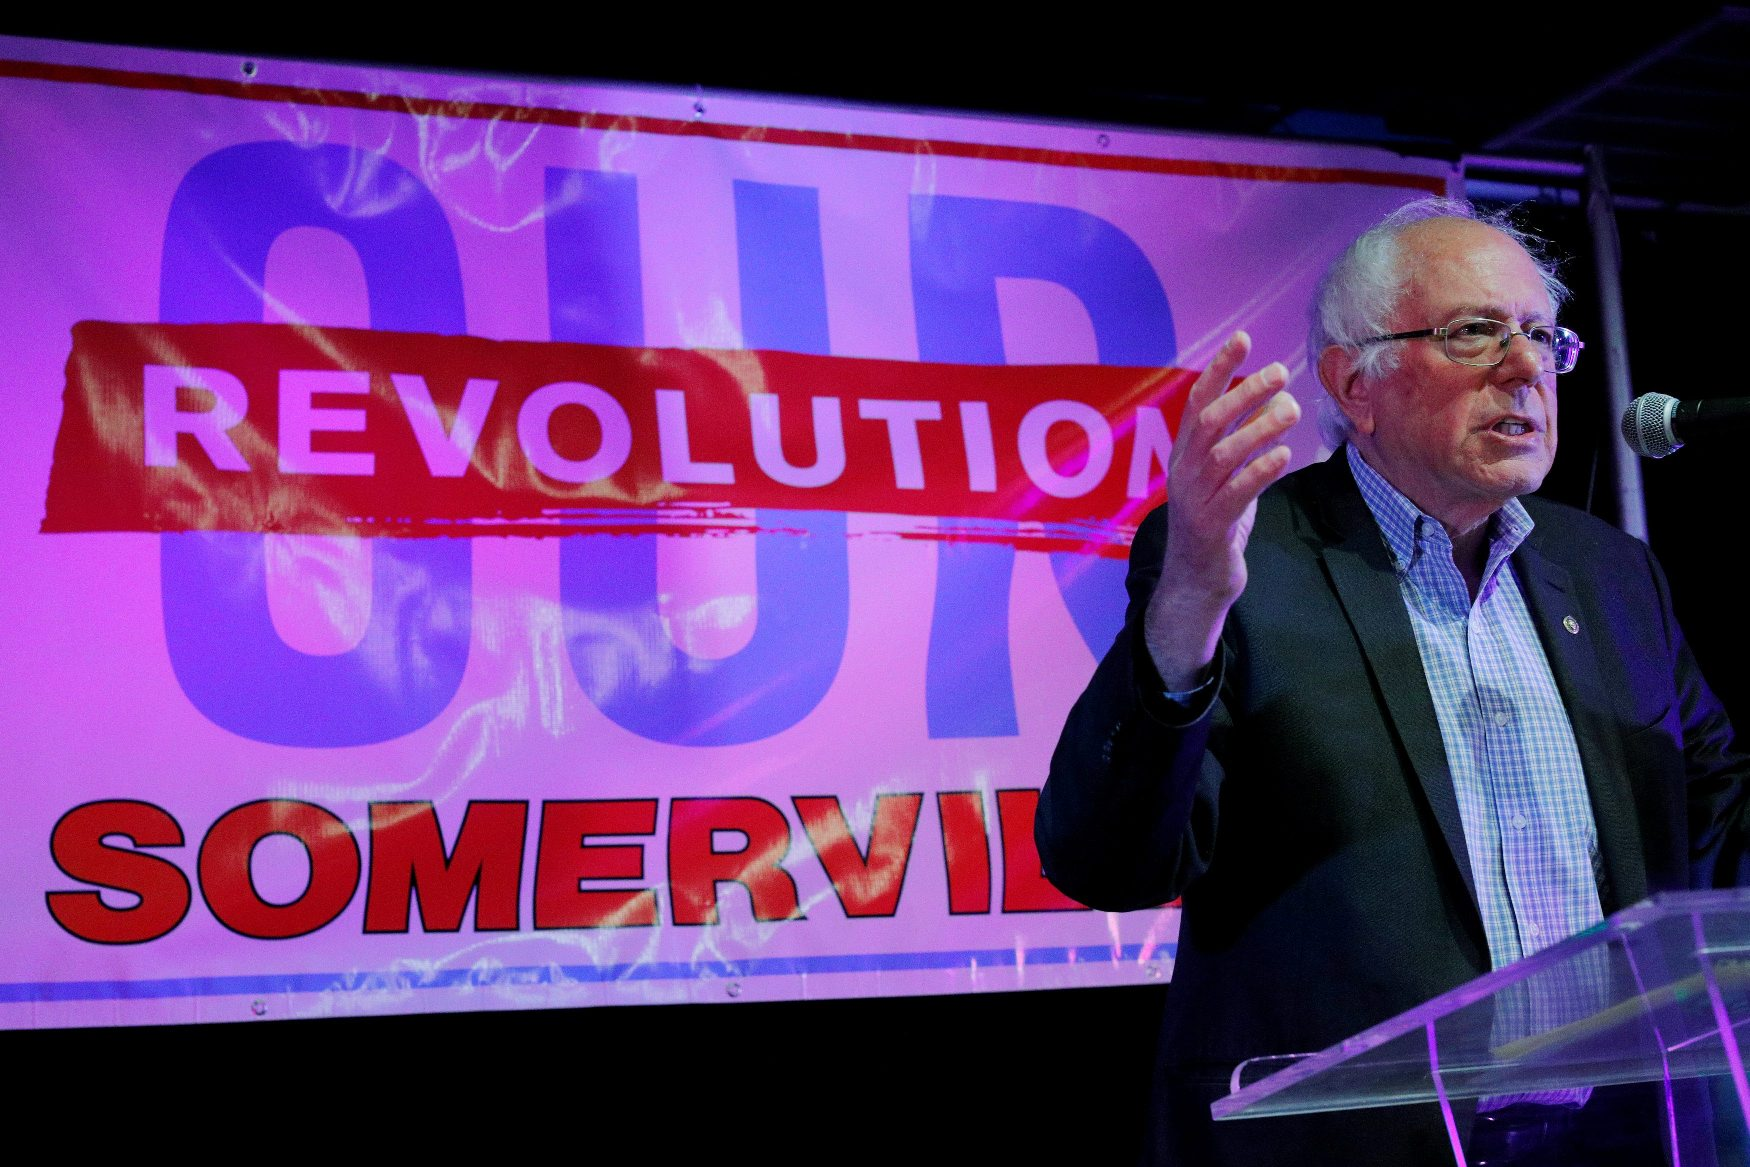 FILE PHOTO: U.S. Senator Bernie Sanders (I-VT) campaigns for local political candidates at an 'Our Revolution Somerville' rally in Somerville, Massachusetts, U.S., October 23, 2017.    REUTERS/Brian Snyder/File Photo